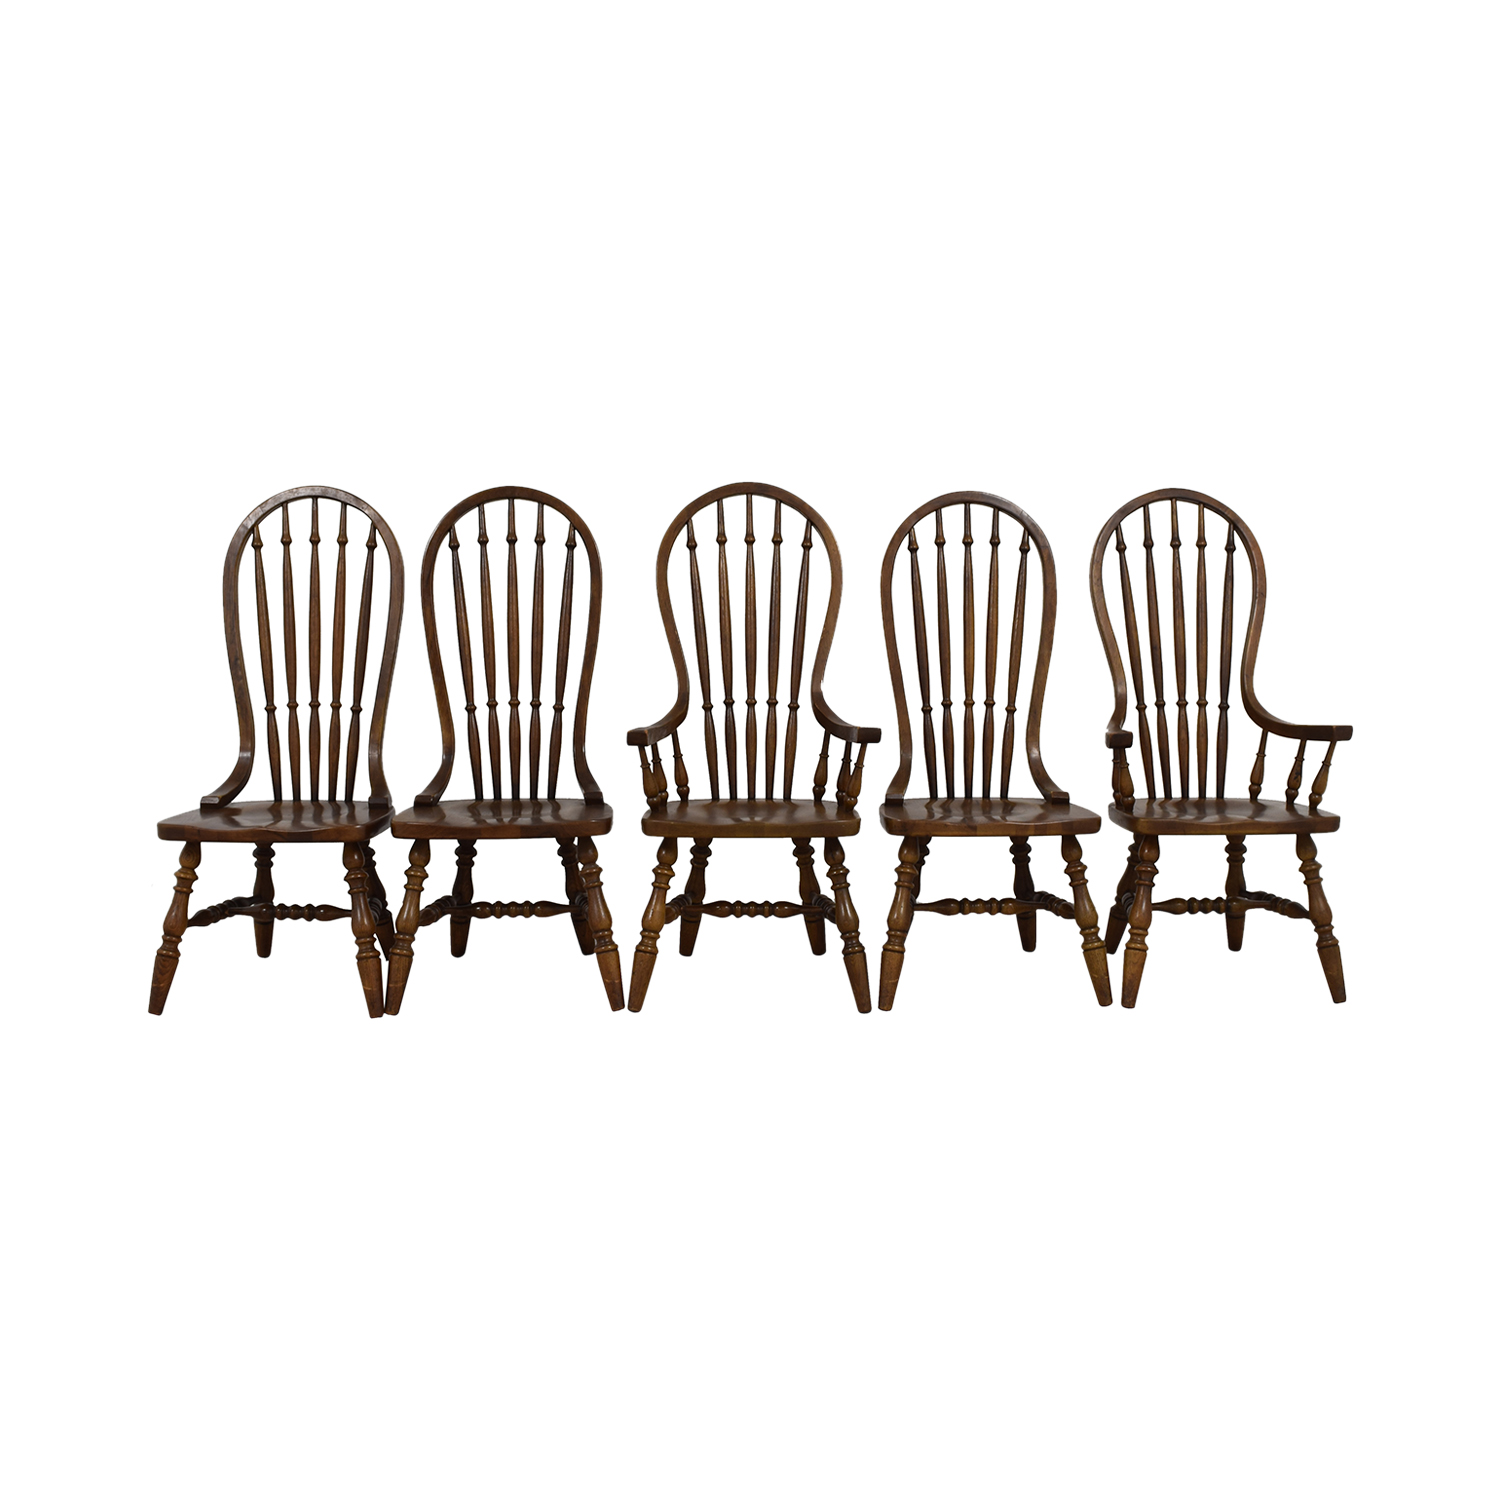 Antique Oak Spindle Dining Chairs coupon